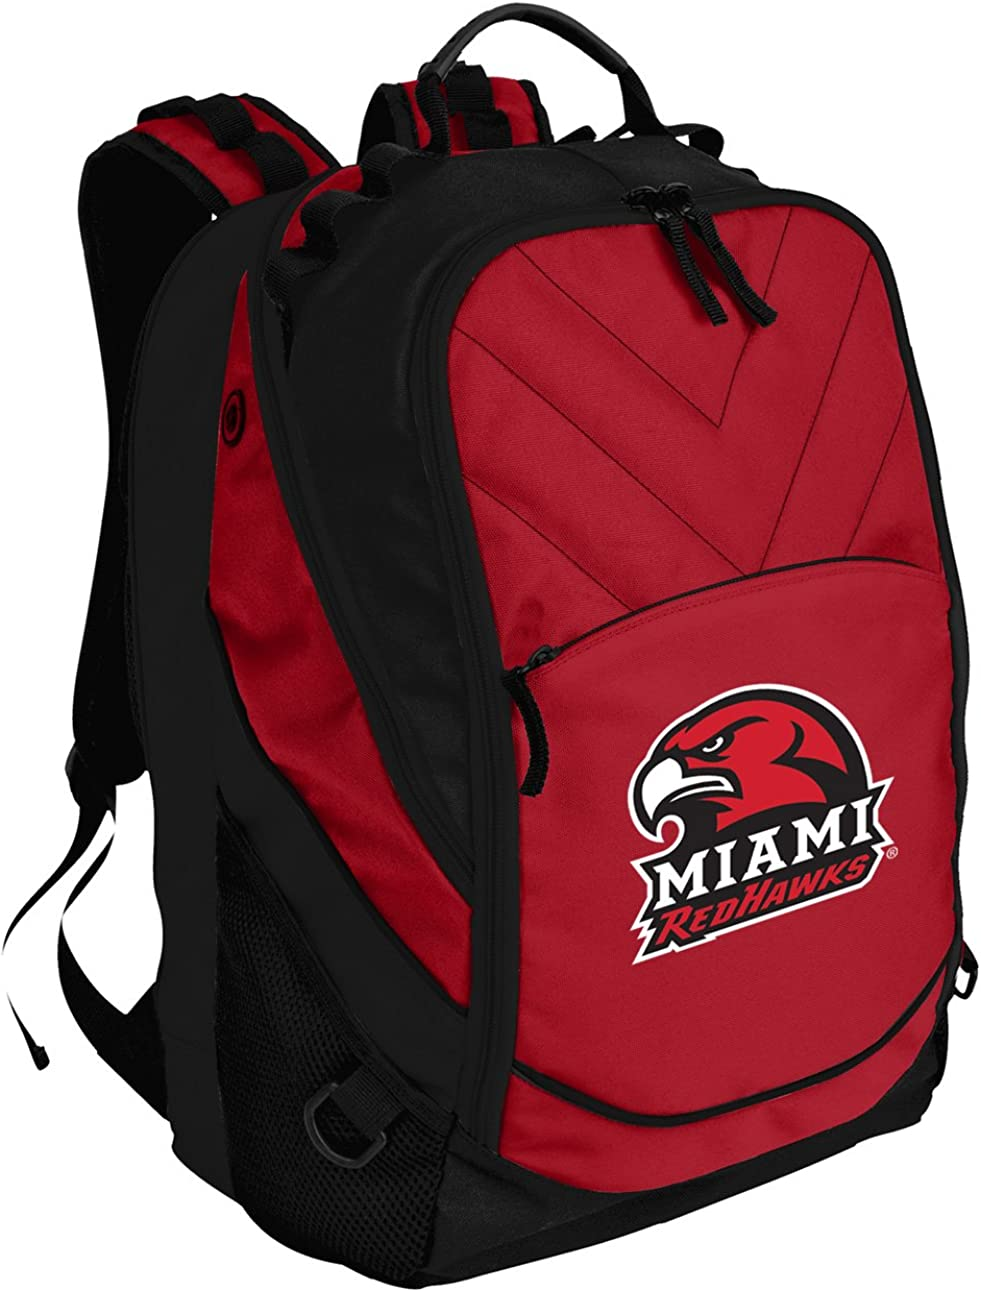 Broad Bay Miami Redhawks Backpack Red Miami University Laptop Computer Bags